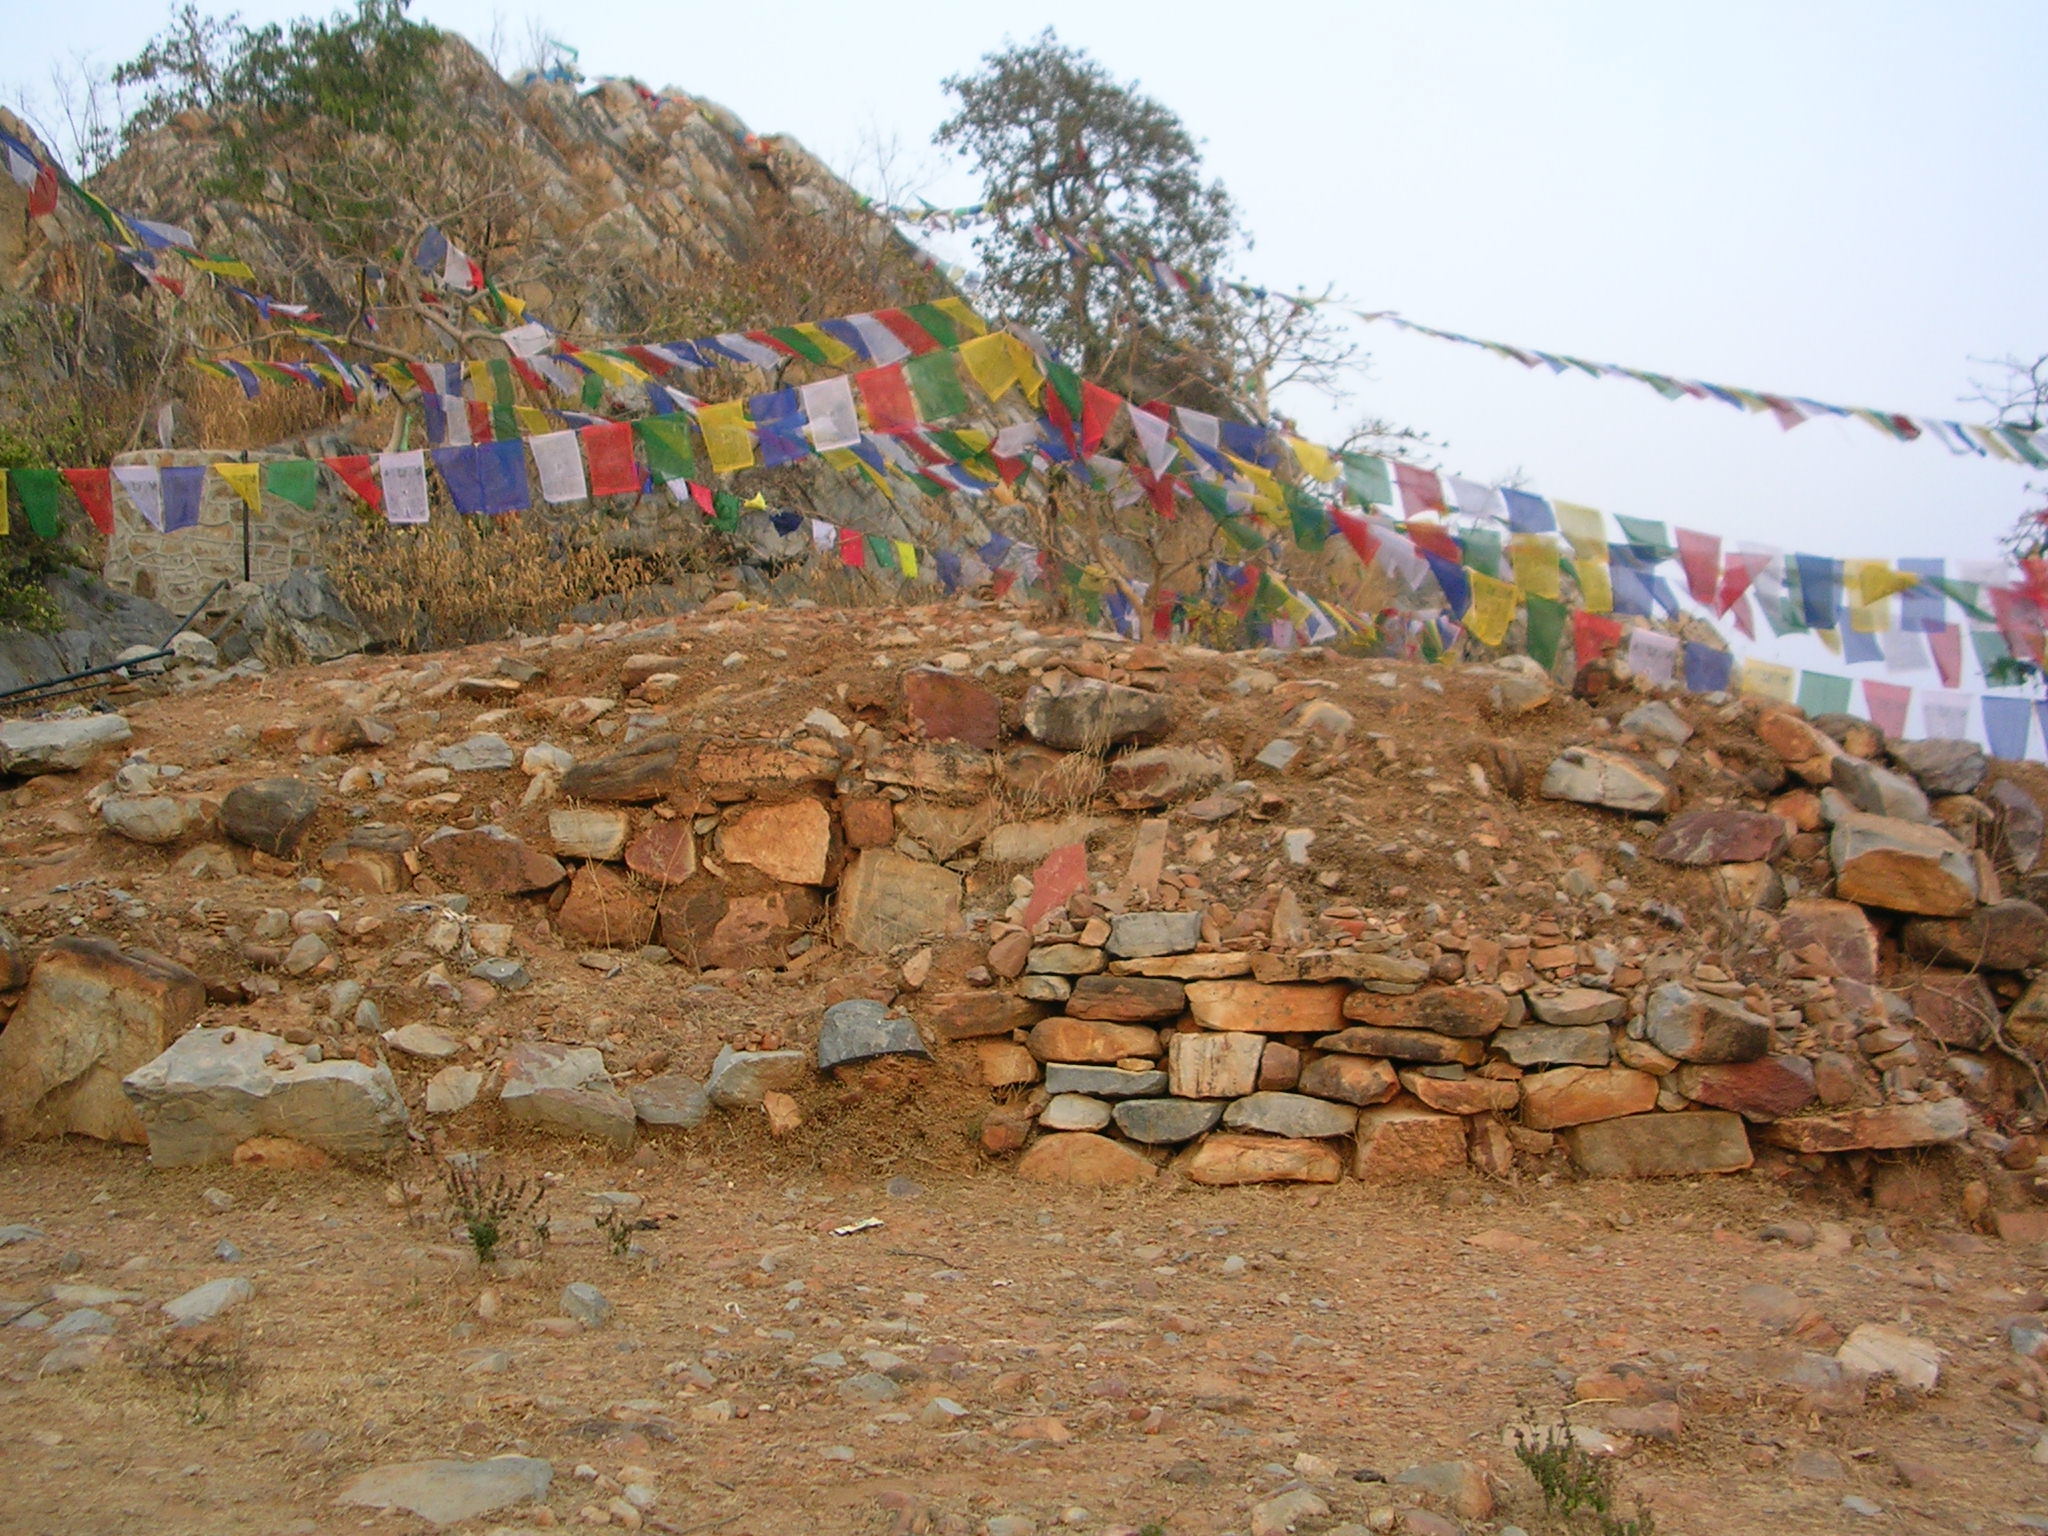 Tibetan Prayer Flags and the Five Buddha Families | Notes